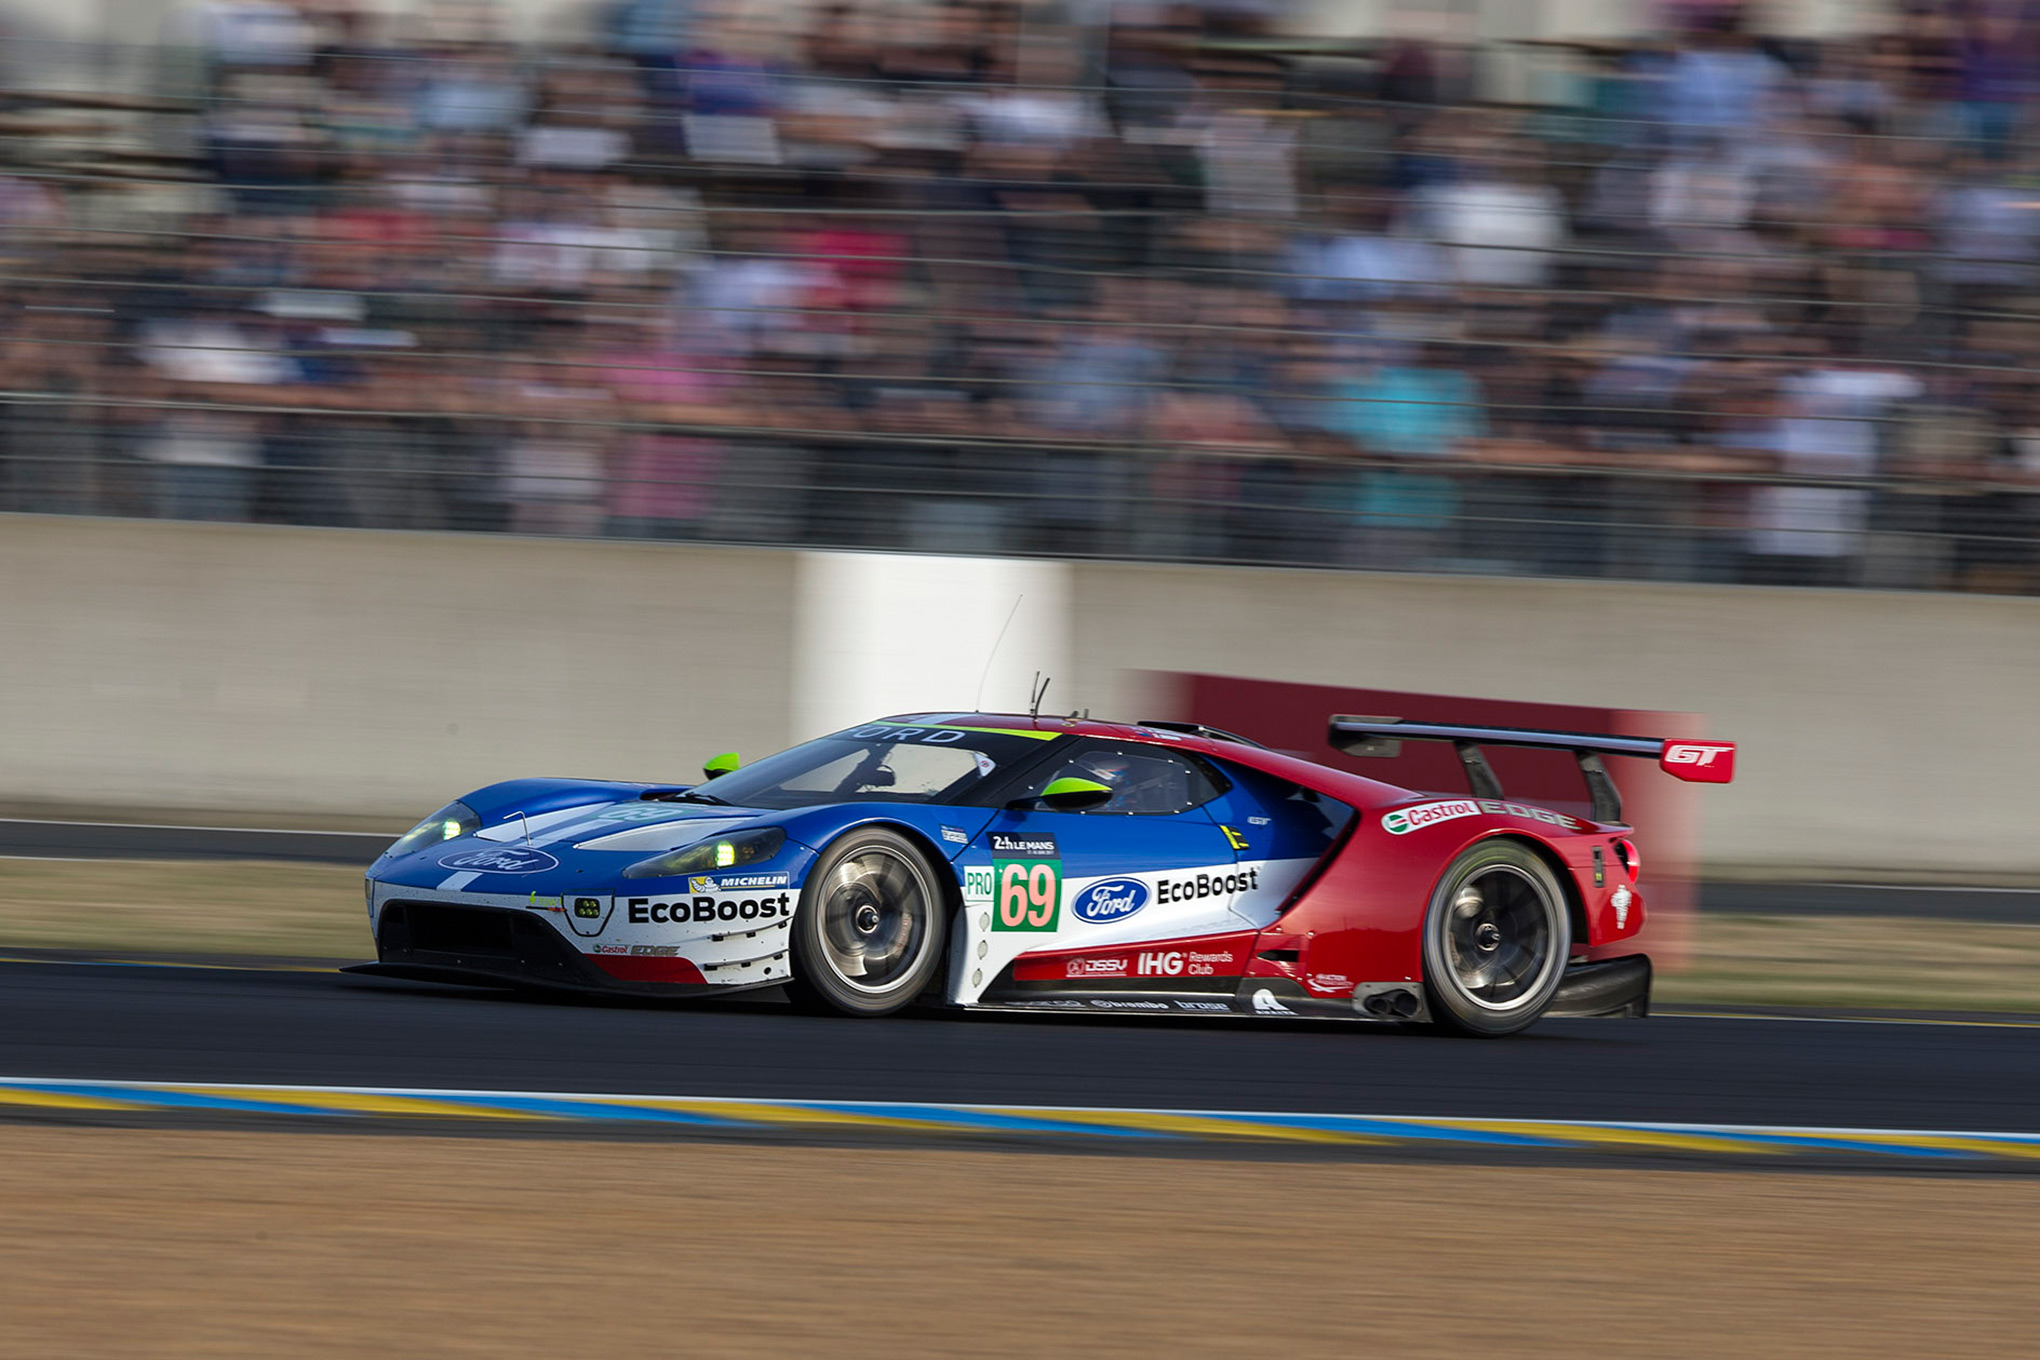 2017 24 hours of le mans race predictions ahead of the world s biggest sports car enduro. Black Bedroom Furniture Sets. Home Design Ideas